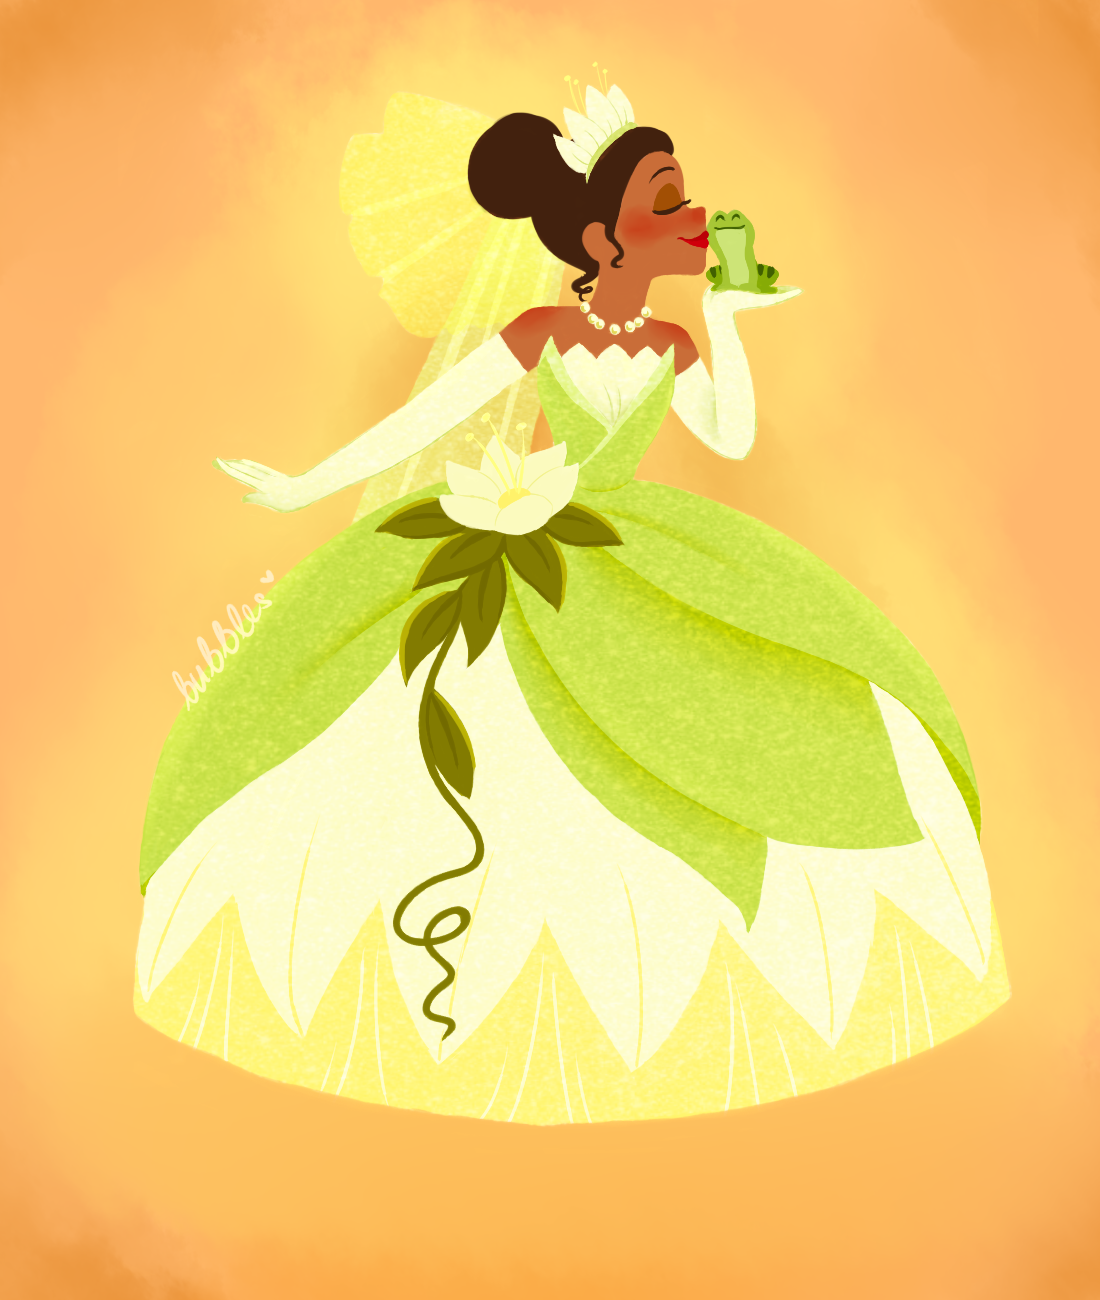 tiana and naveen by kihoritumblrcom the princess and